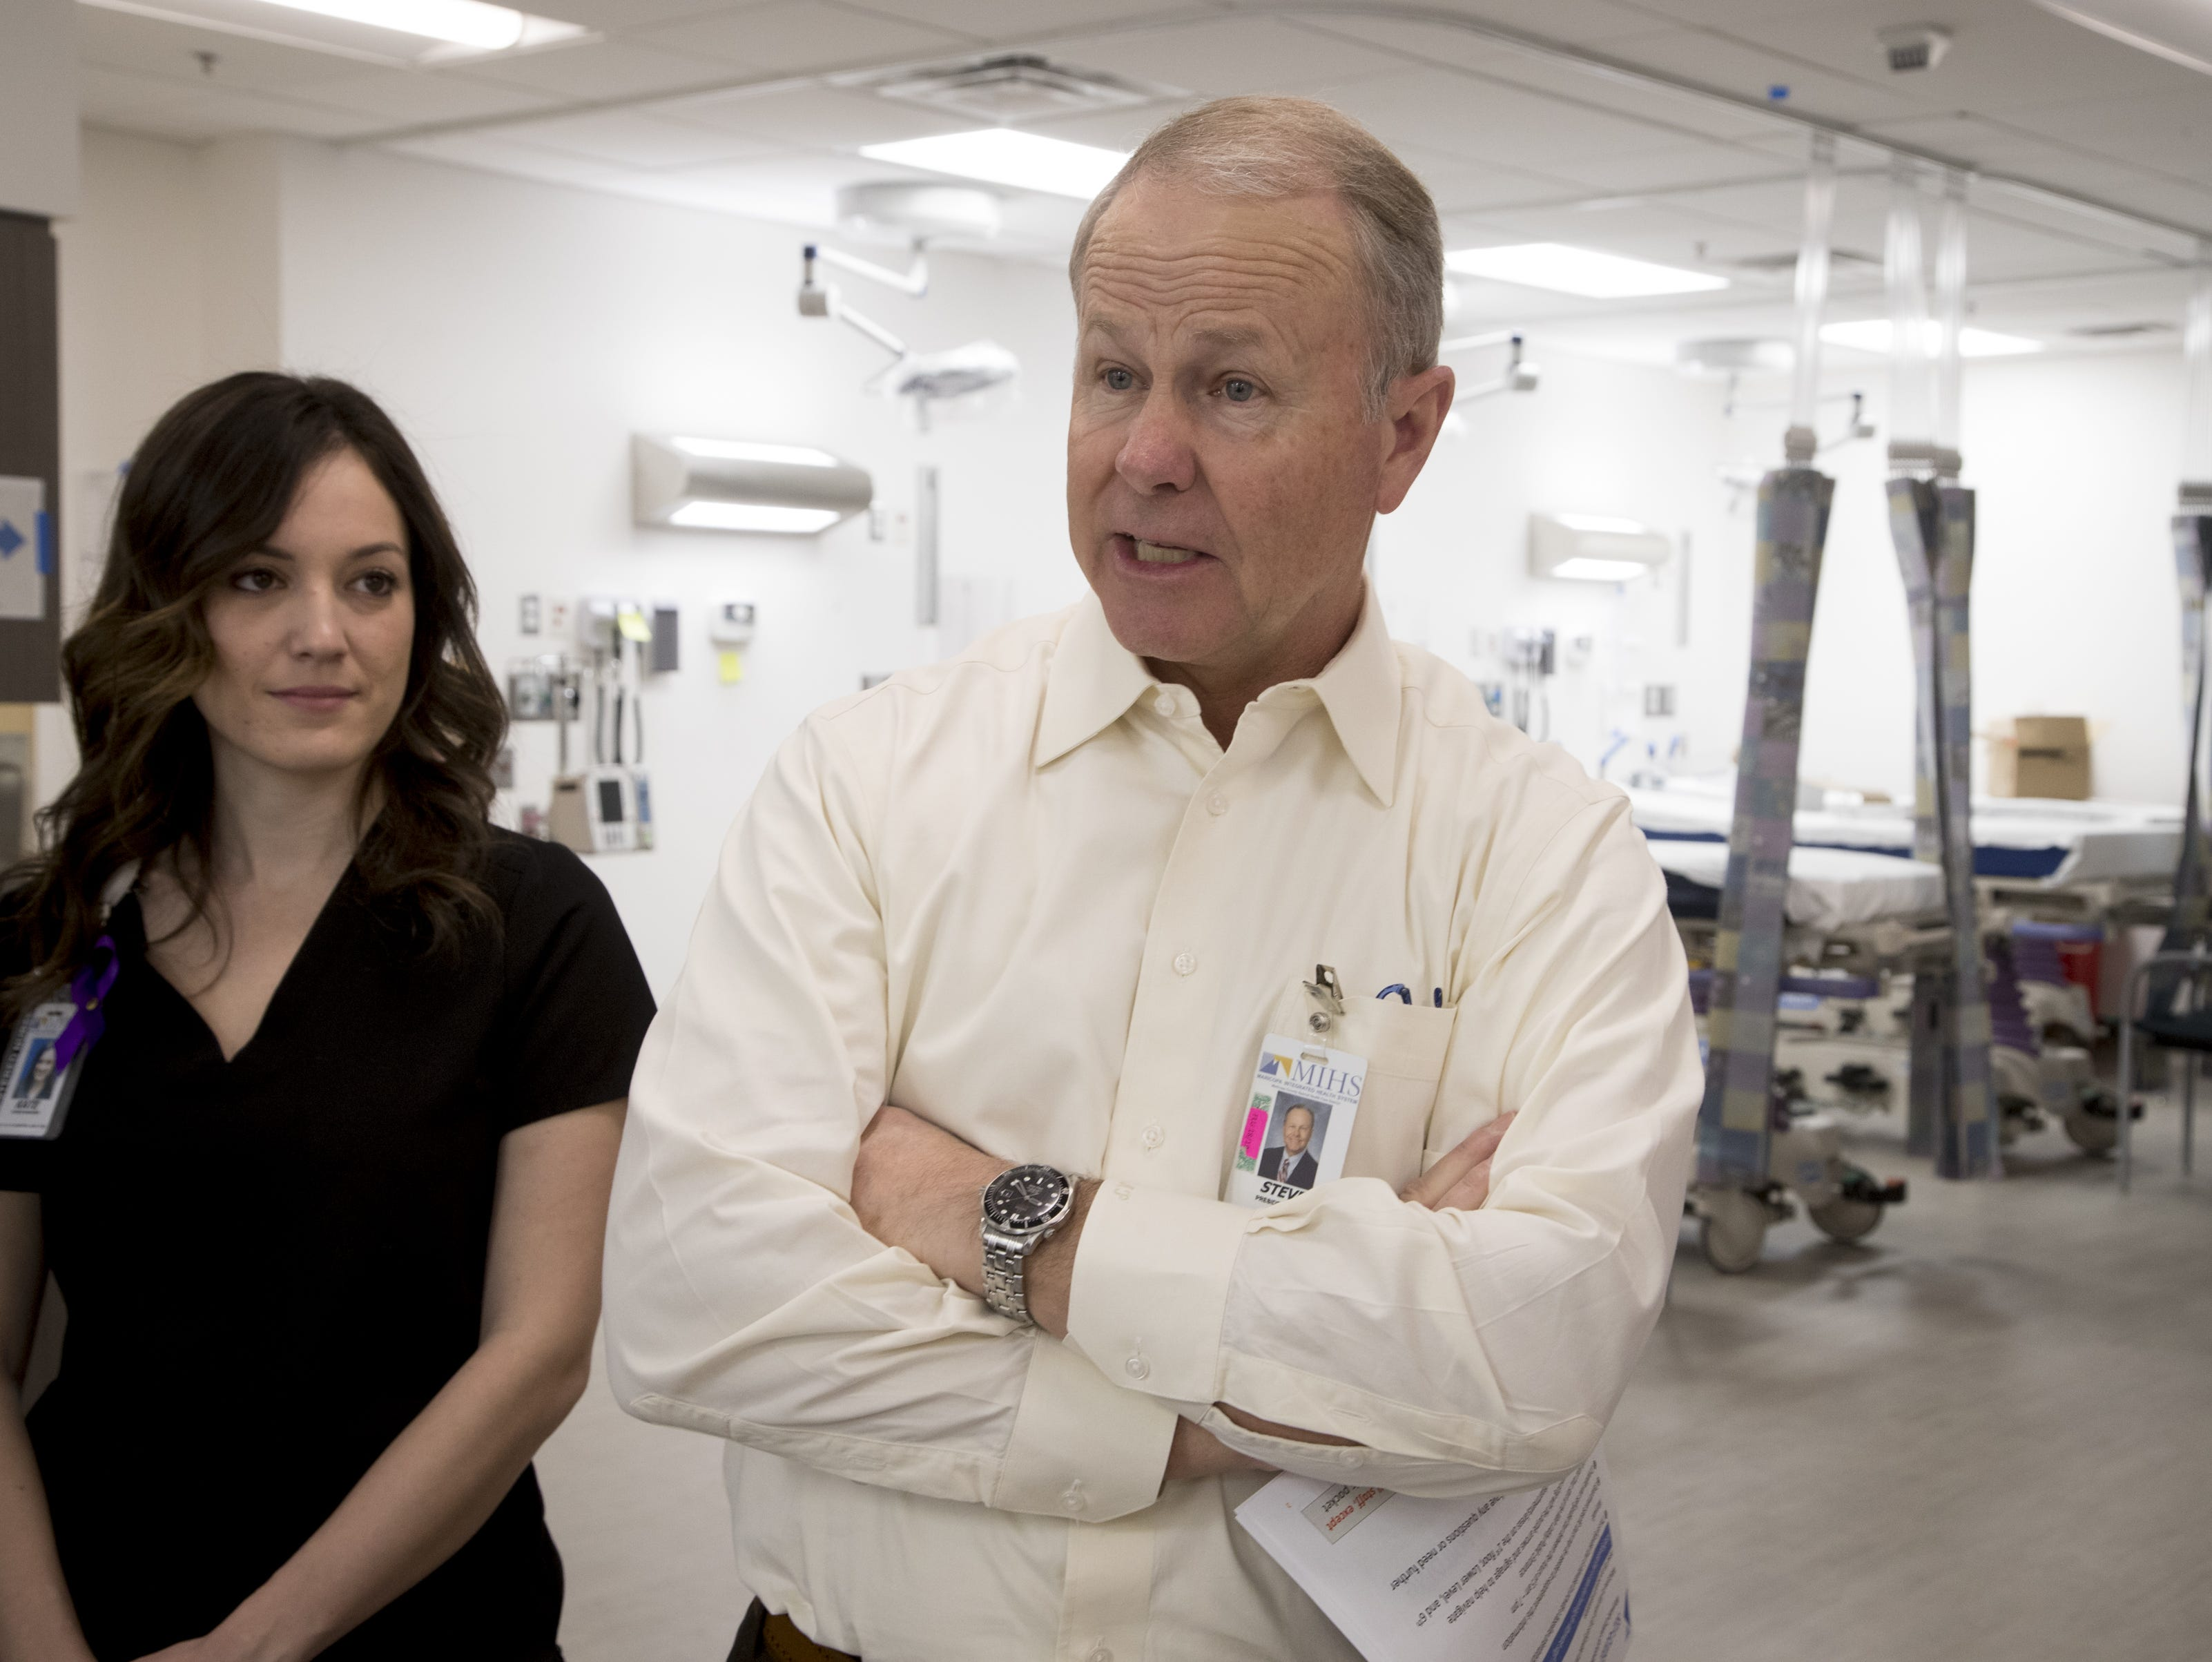 Steve Purves, MIHS president and CEO, speals in the Emergency Department at the Maricopa Integrated Health System Maryvale campus on April 1, 2019.